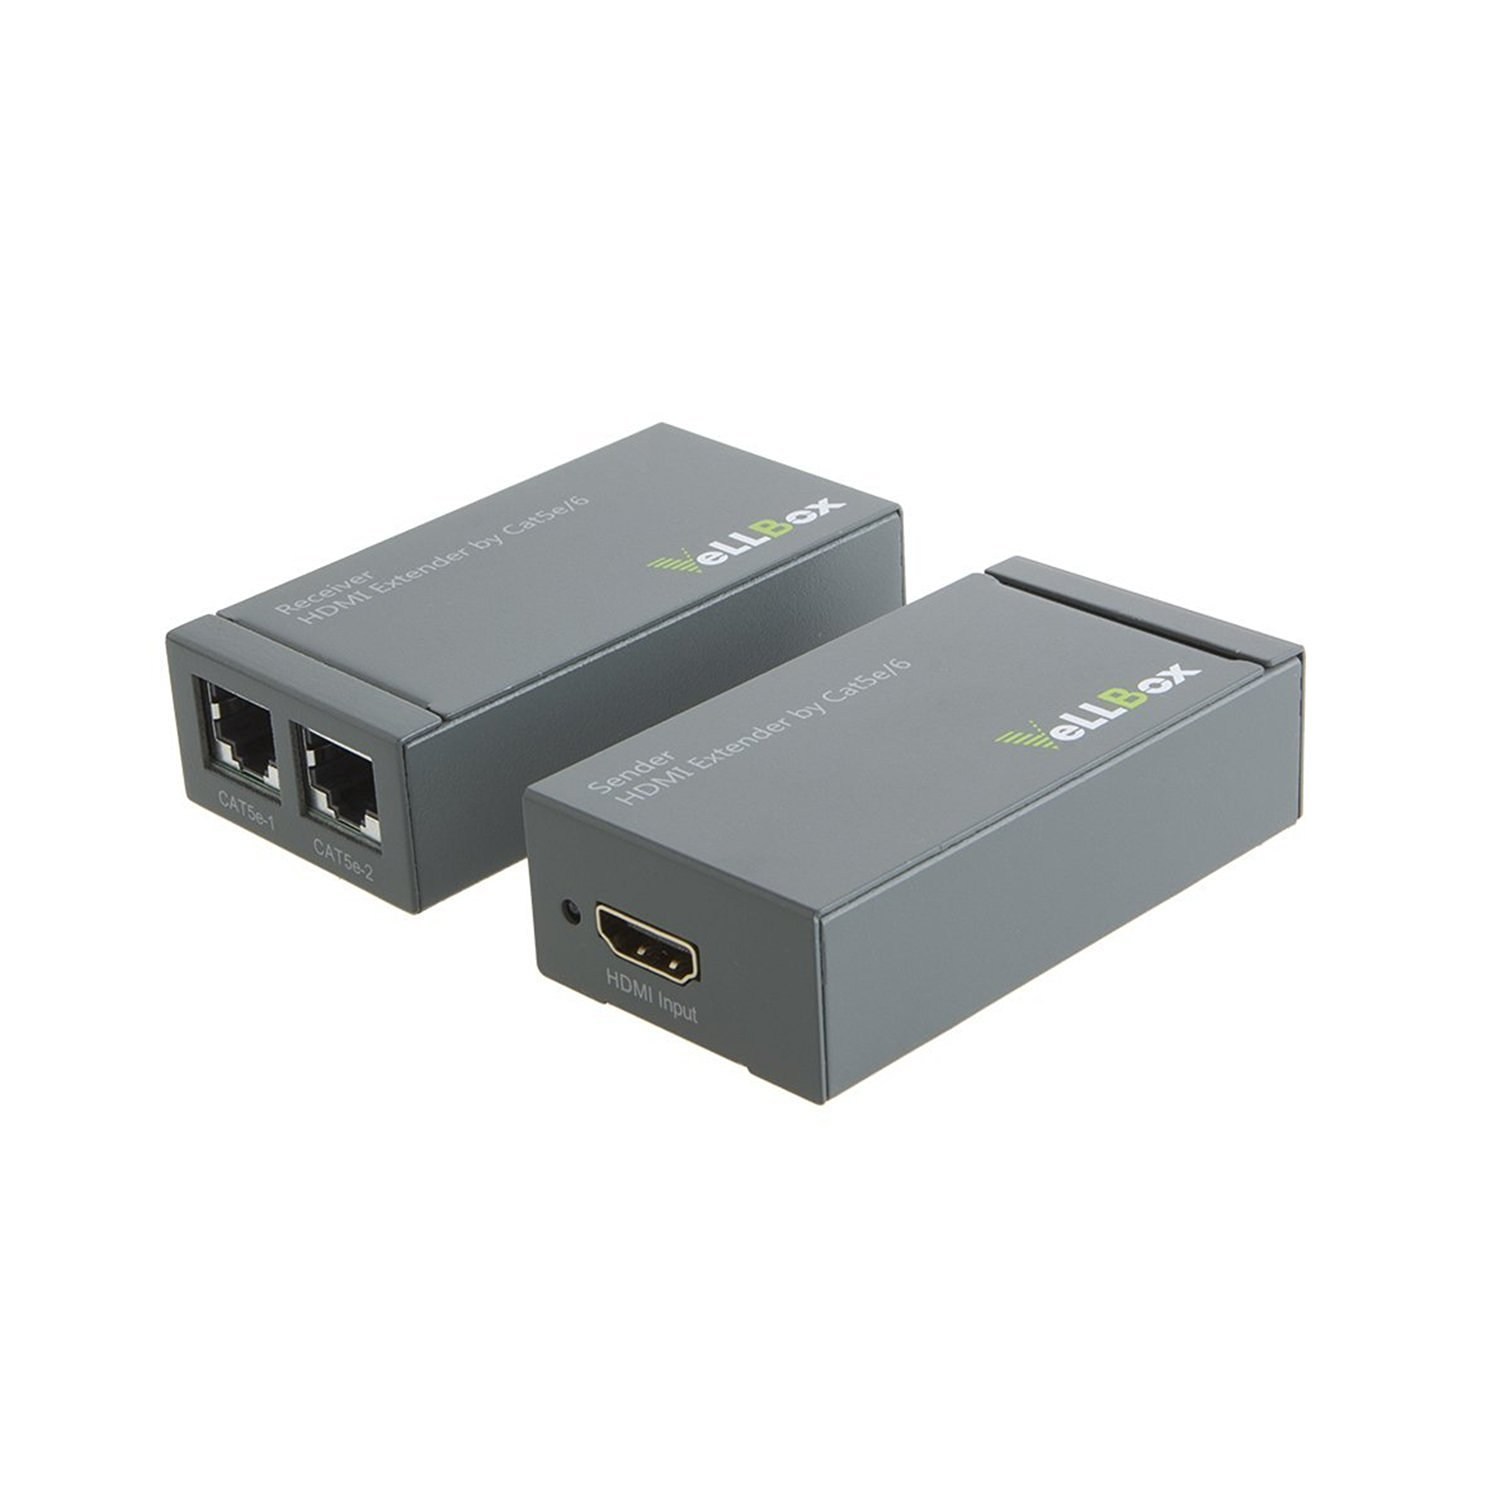 VeLLBox HDMI Extender 60m by cat-5e/6/7 cable 60m, Support Resolution up to 1080p 5V/2A Universal Power Adapter, Grey